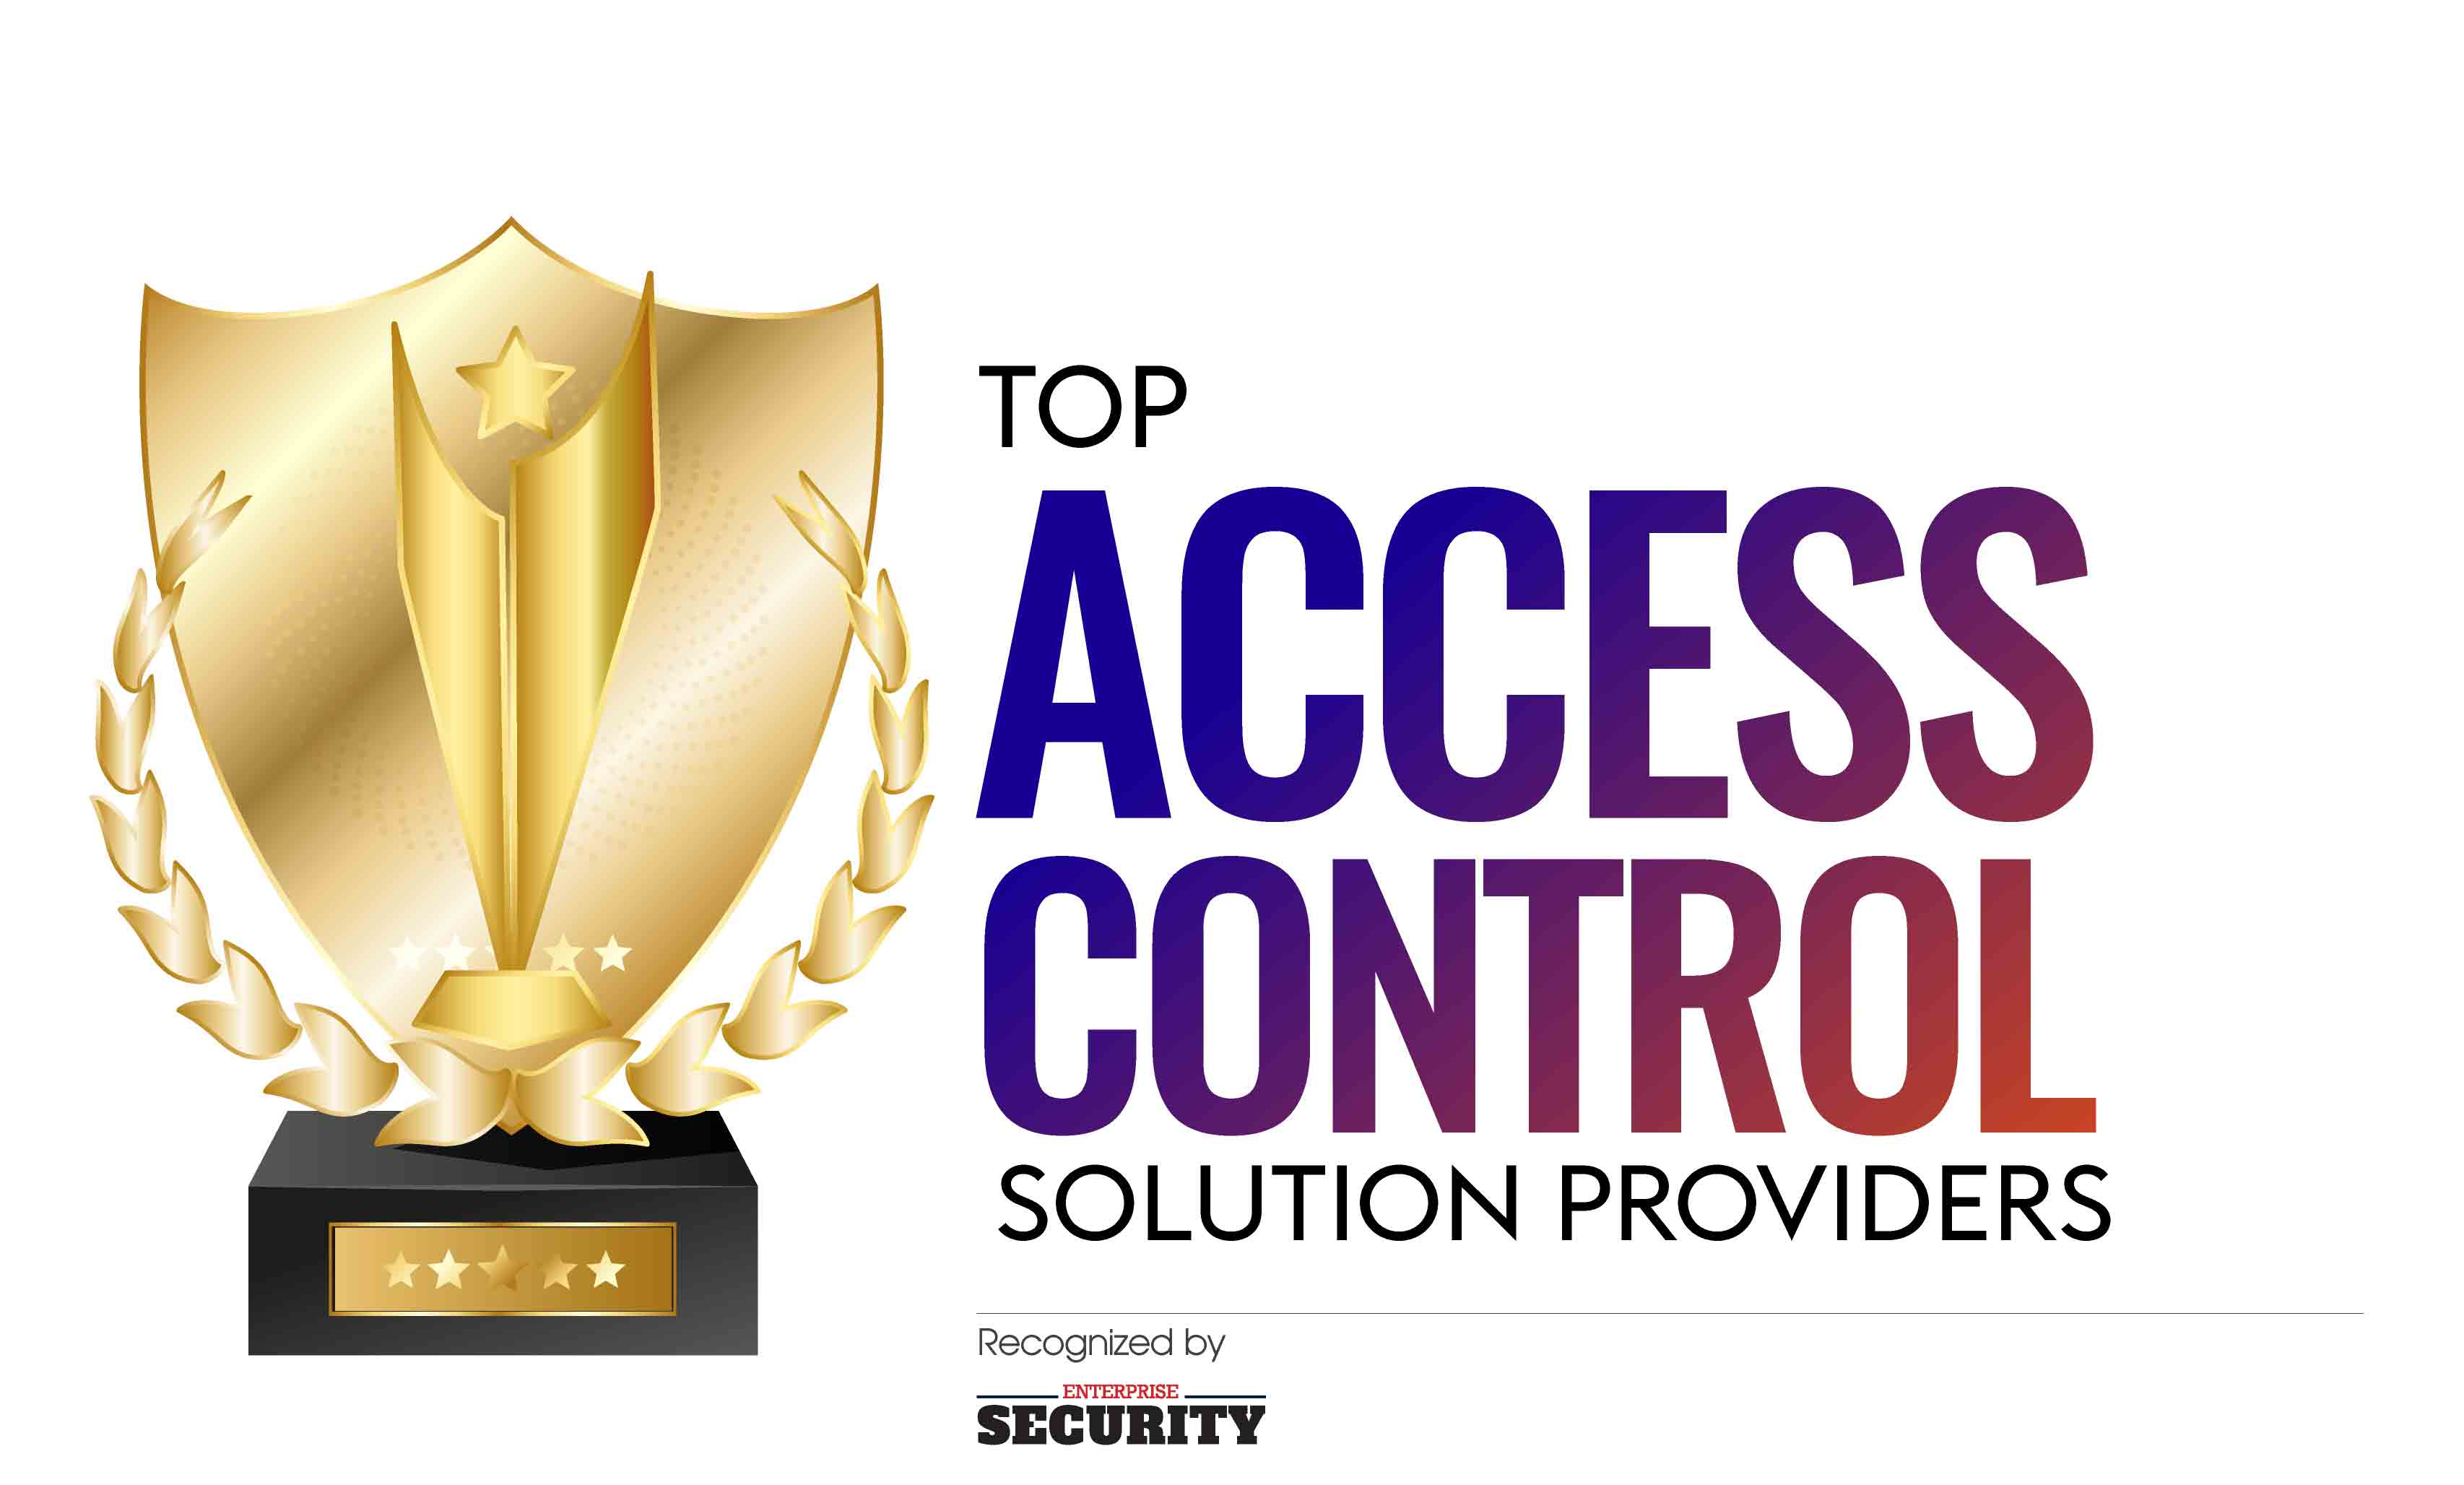 Top Access Control Solution Companies